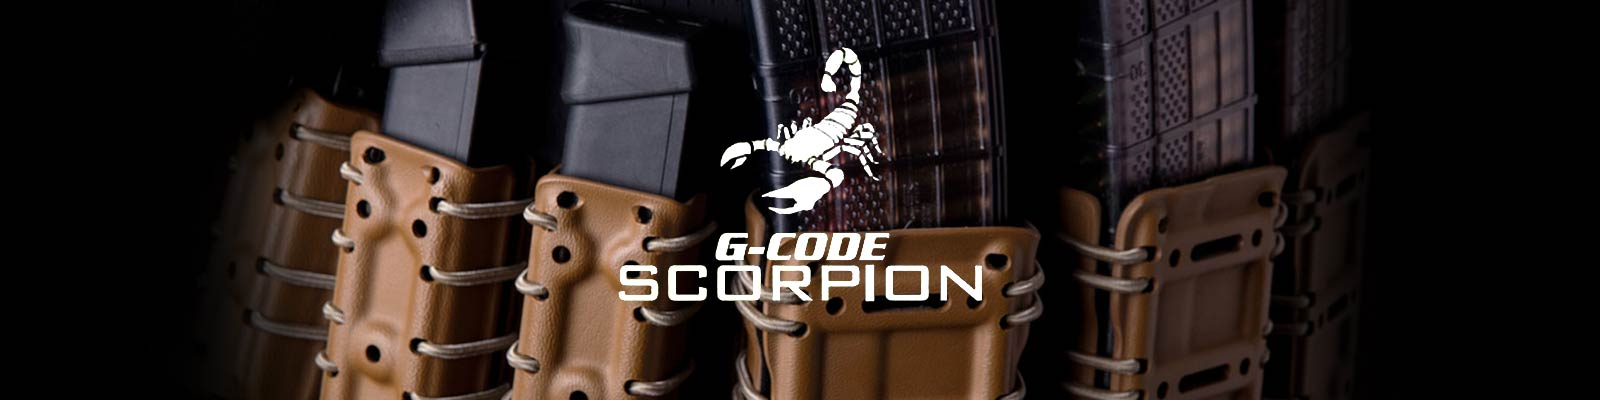 scorpion-category-1600x400_rev